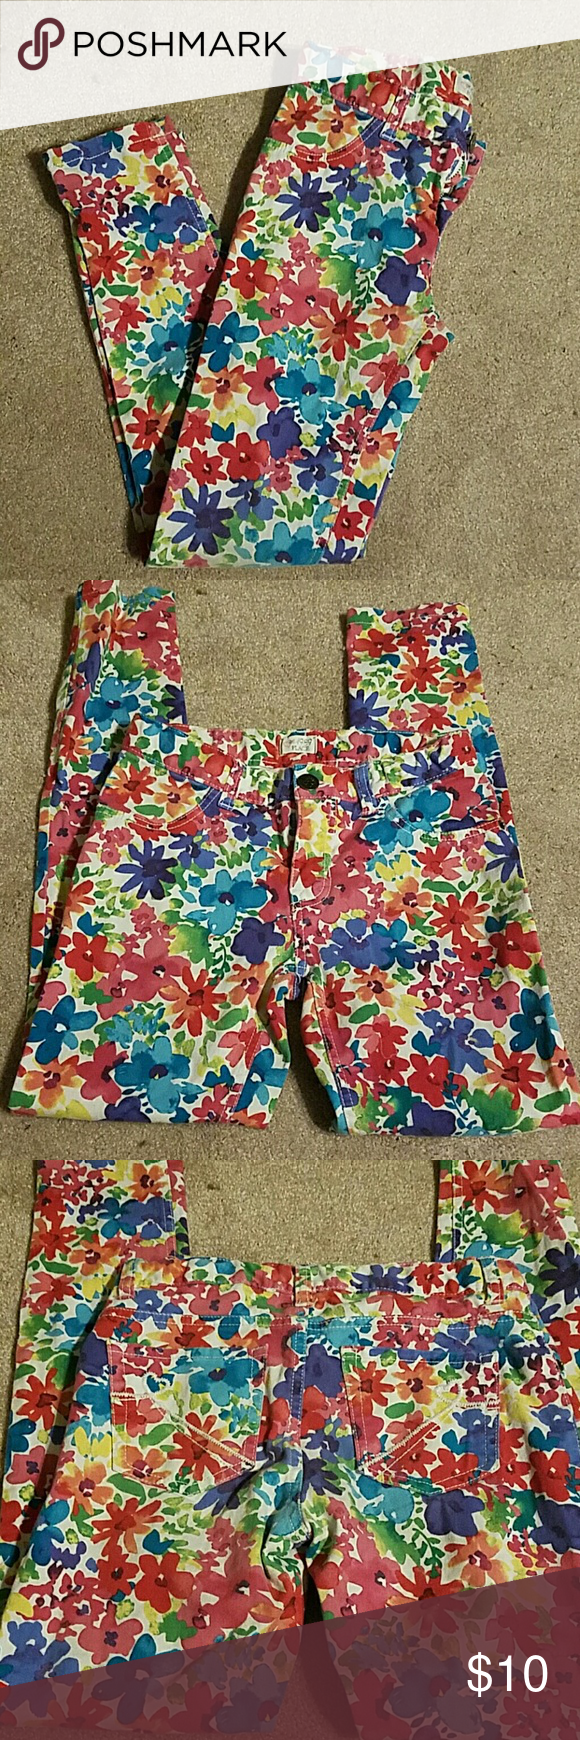 Flower jeans Floral skinny jeans from Children's Place. Children's Place Bottoms Jeans